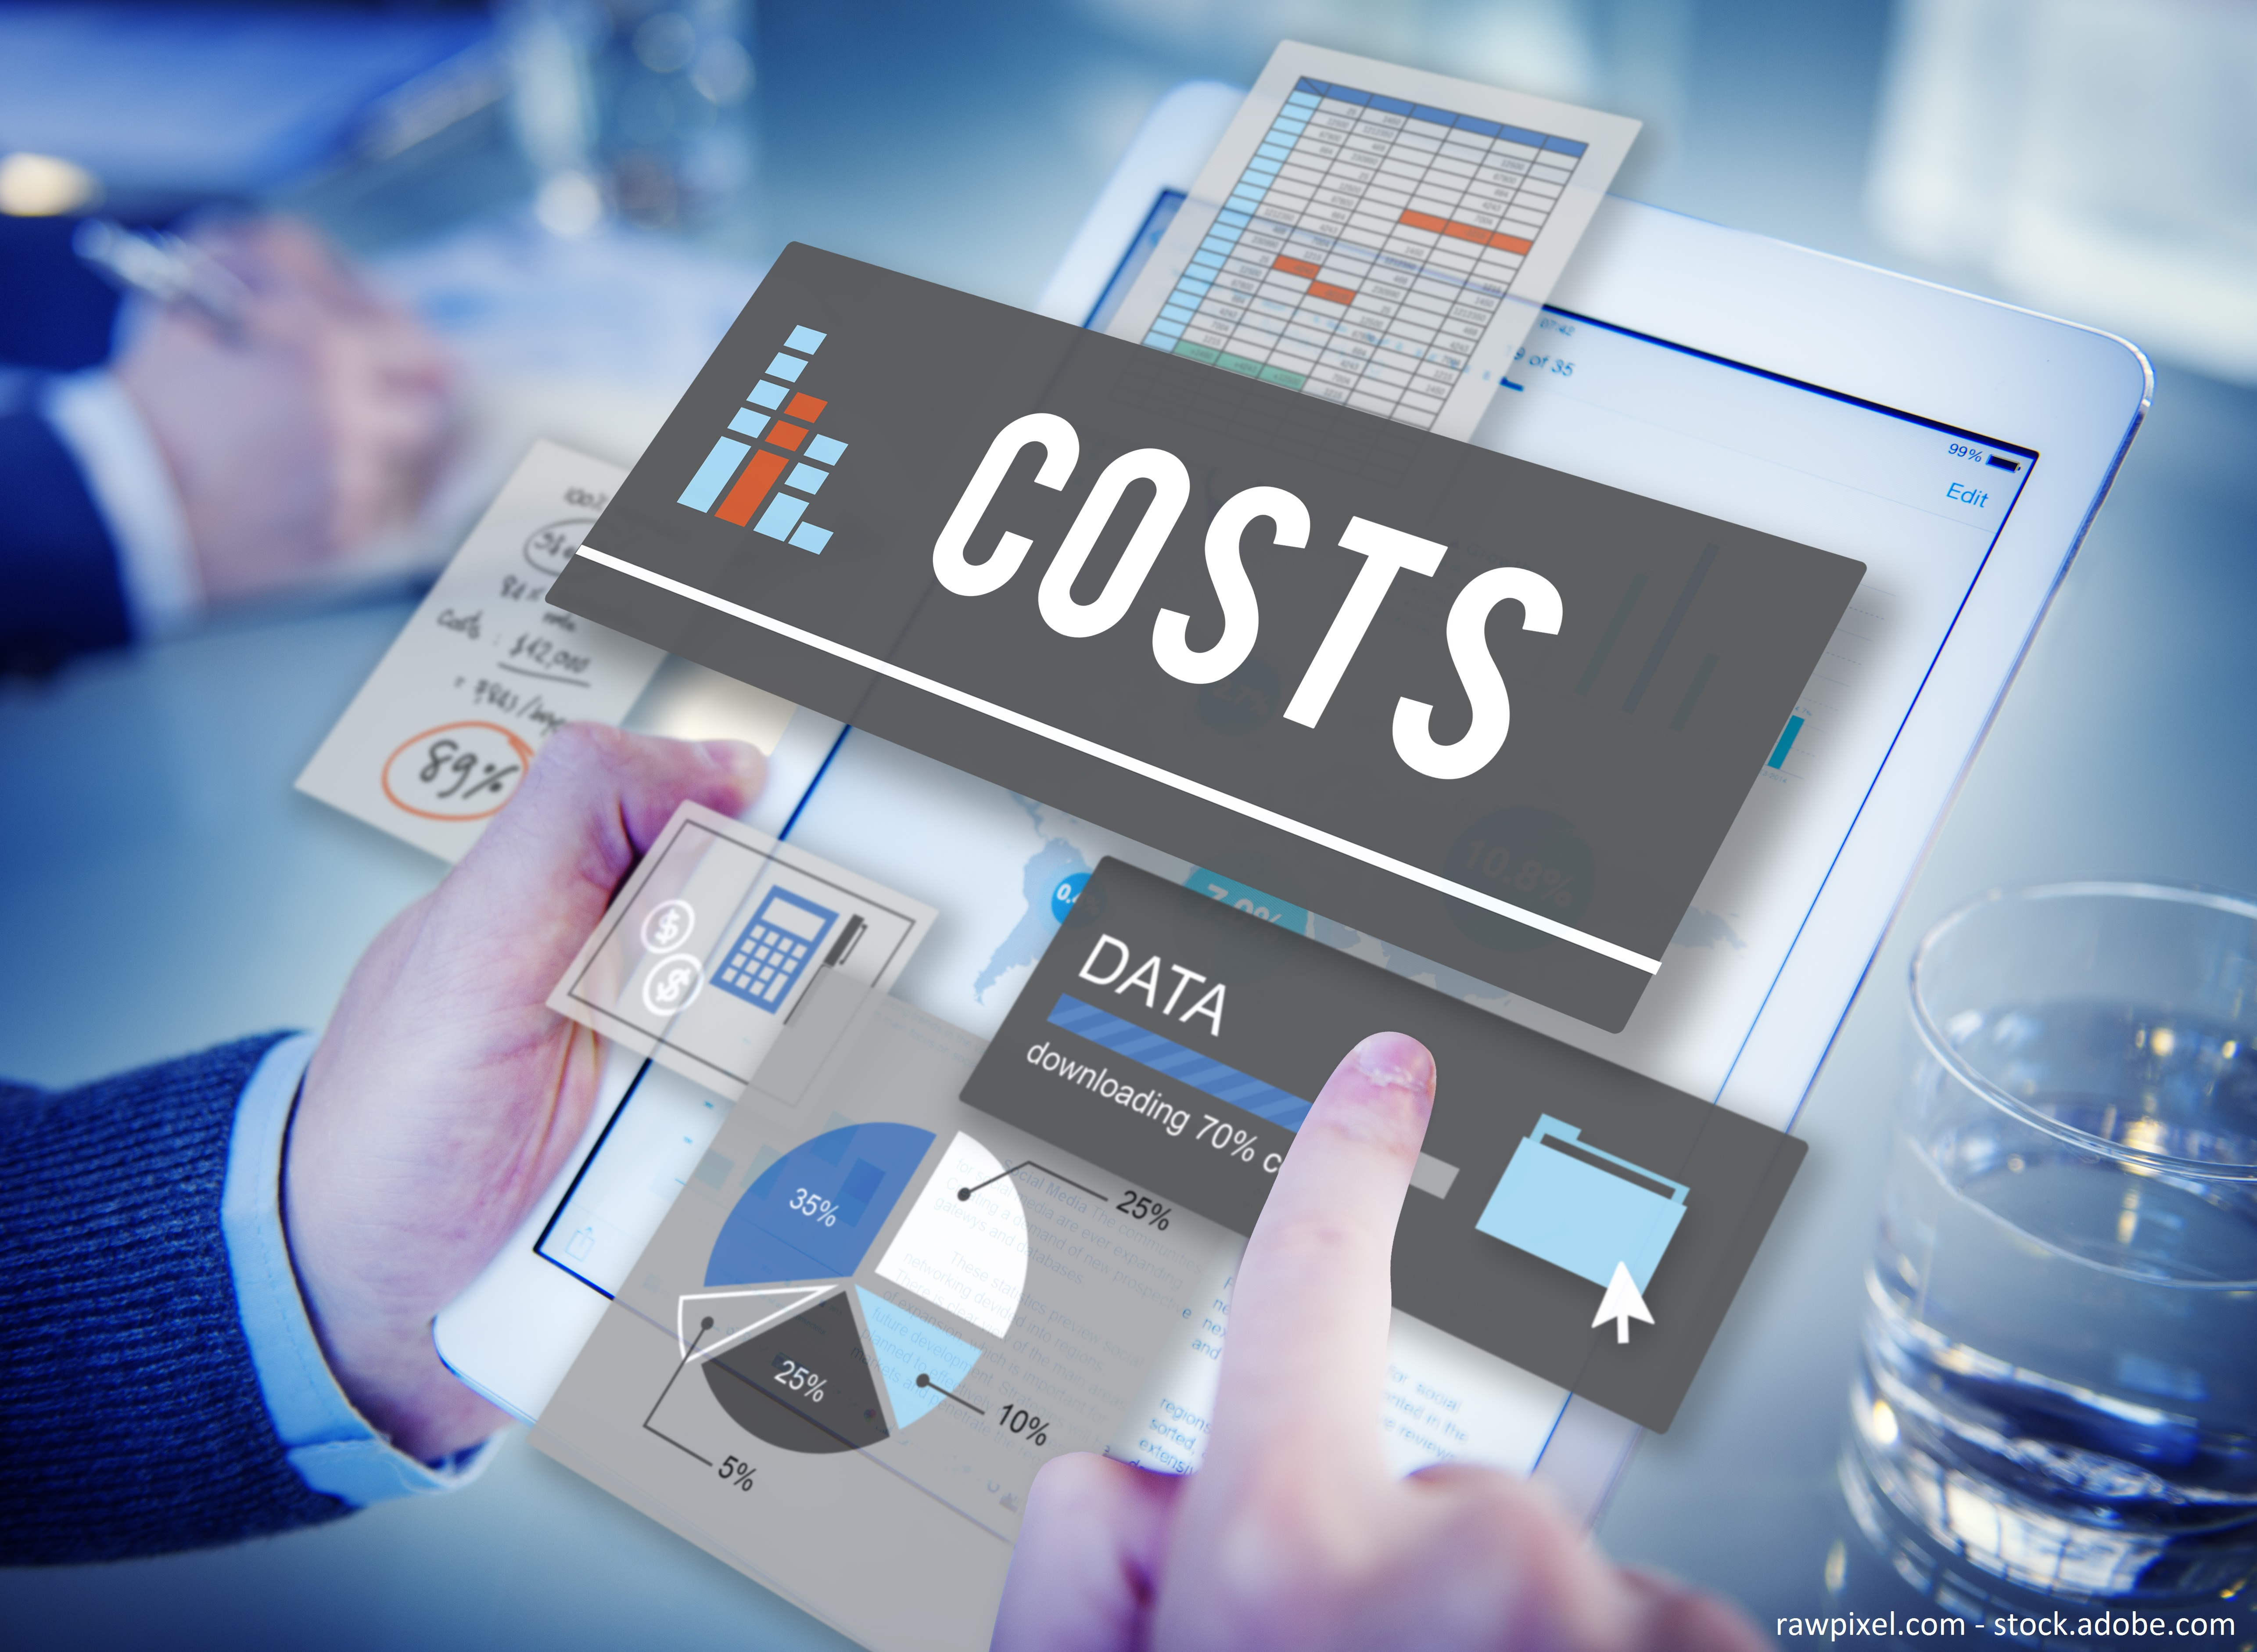 The Benefits of Job Costing Software